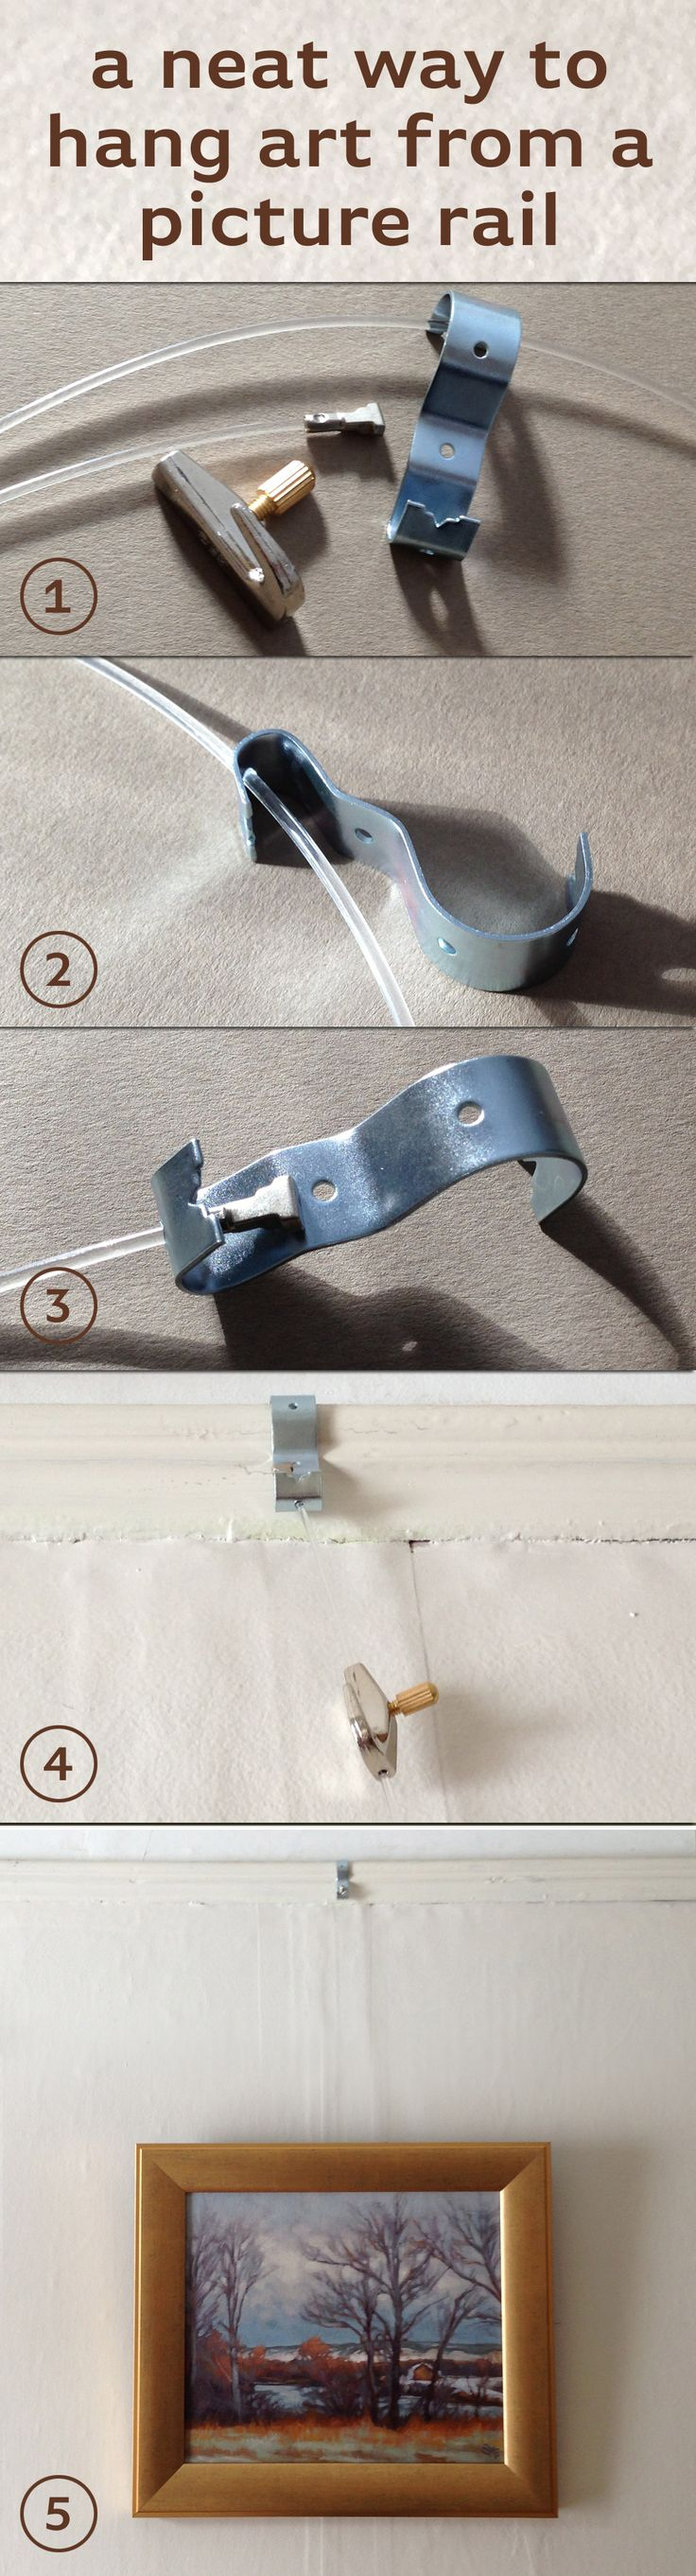 Here's a tidy and easy way to hang art from picture rail. 1. What you'll need: perforated picture rail hook (http://govart.com/hardware_rail_hooks_A.html); cable and art hook: I used the twist-end transparent cord and utility hook from http://www.ashanging.com/en/click-rail-system/ 2. Thread end of nylon cord through hole at bottom of picture rail hook. 3. Twist end at top anchors cord. 4. Place hook over picture rail, add utility hook to cable and adjust height. 5. Hang artwork. Easy!